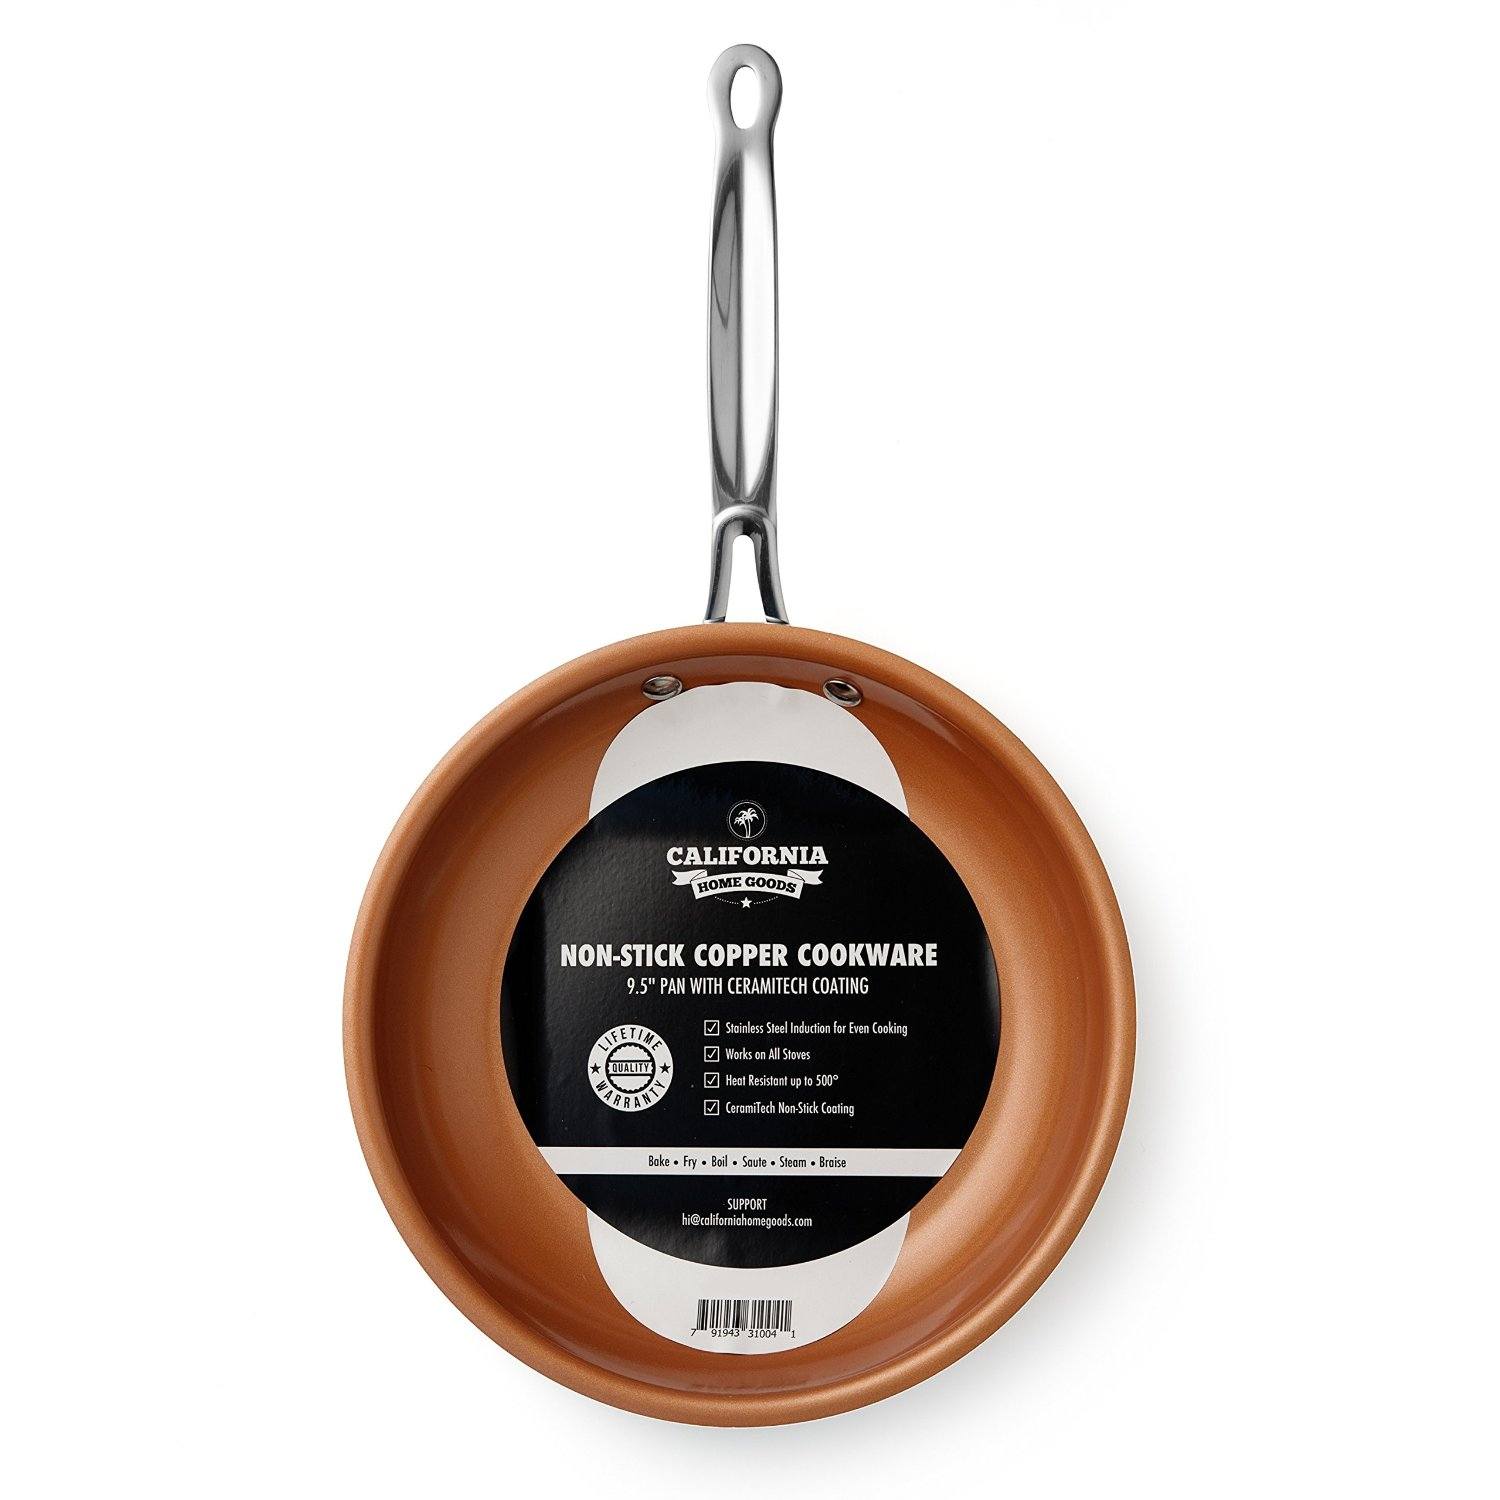 "California Home Goods 9.5"" Non-Stick Ceramic Titanium Frying Pan, Oven Safe, Dishwasher Safe, Scratch Proof, 9.5 Inches, Copper Colored"